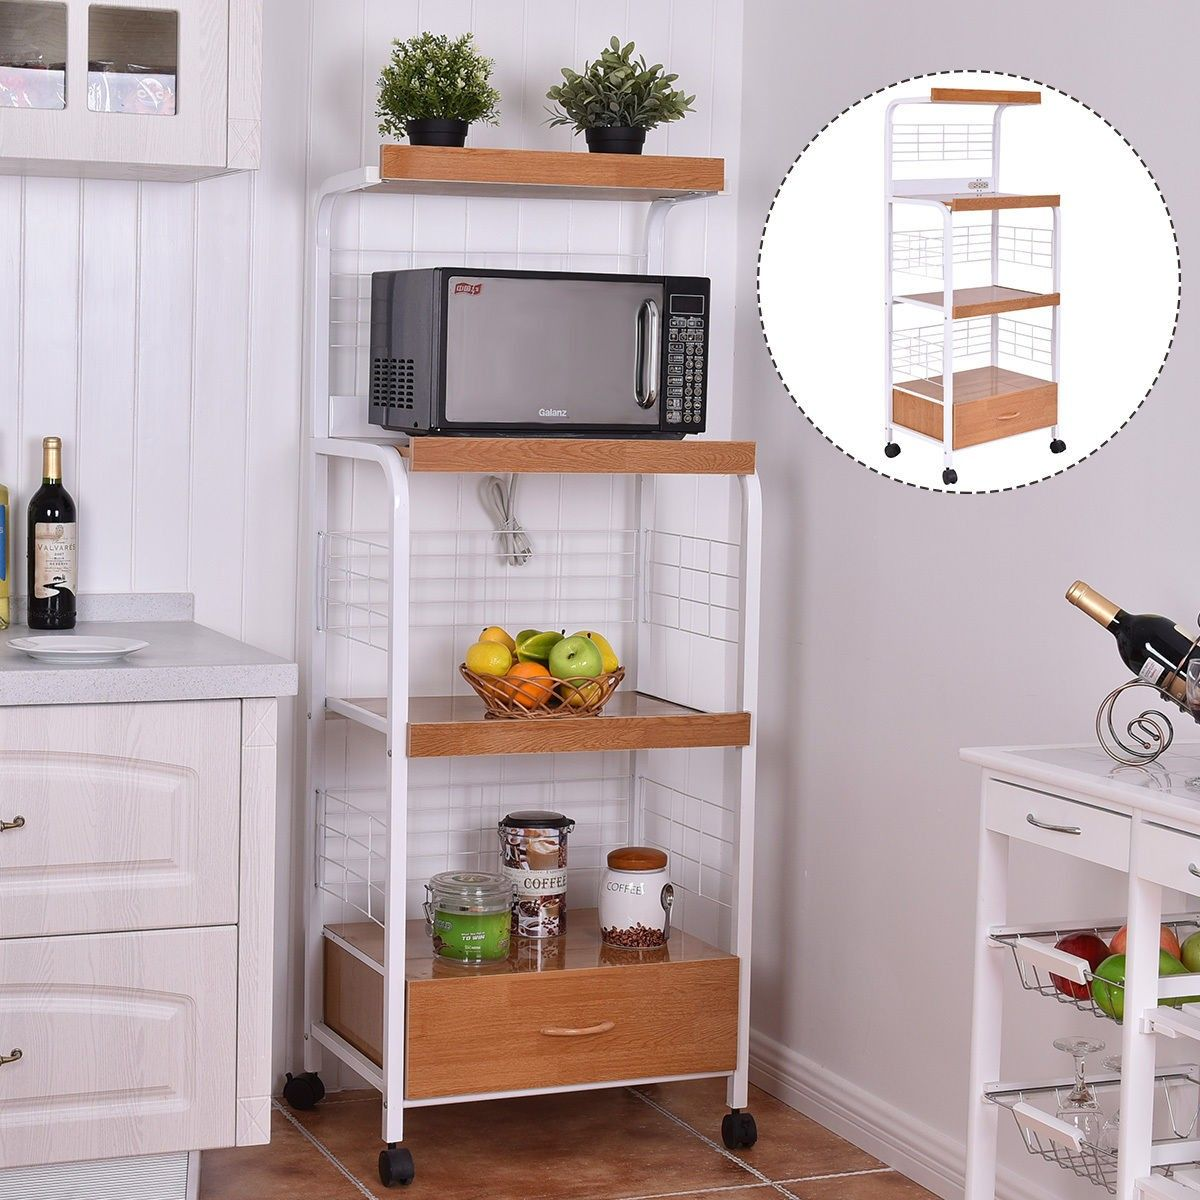 3 Tier Rolling Kitchen Microwave Oven Stand Cart With Electric